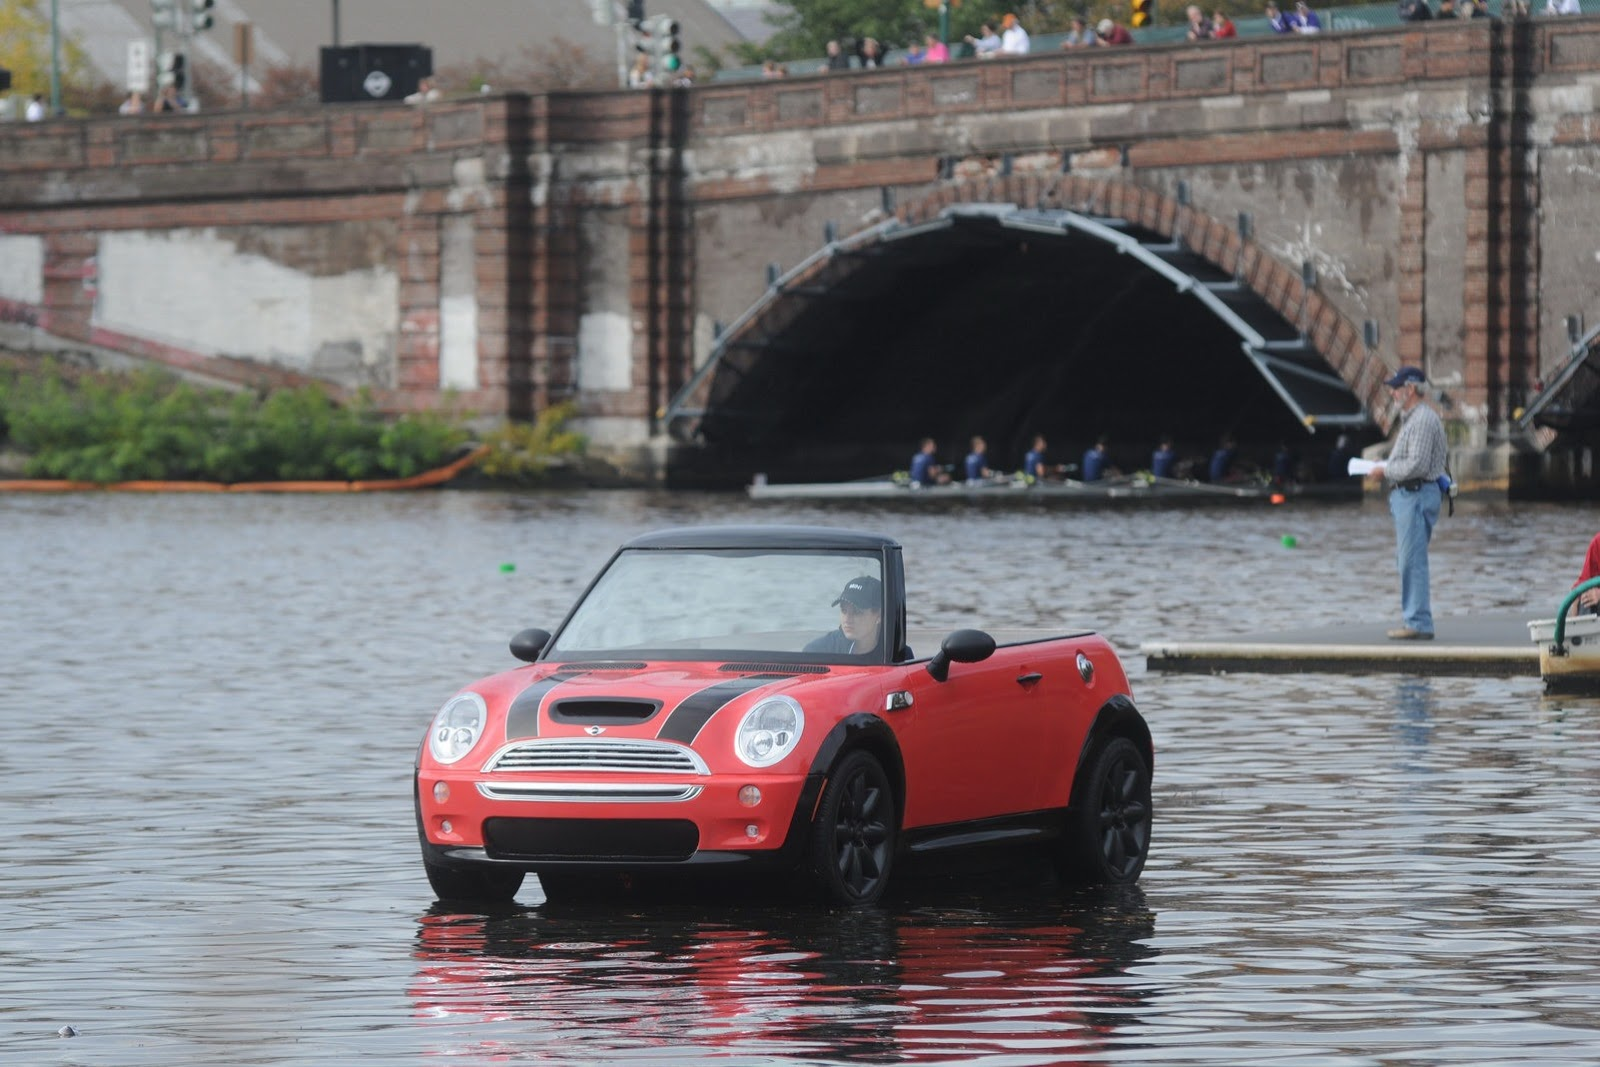 Mini Cooper S In Fibergl Then Married With A Boat Hull And 6hp Outboard Motor For Good Measure Have Look At The Full Gallery After Jump